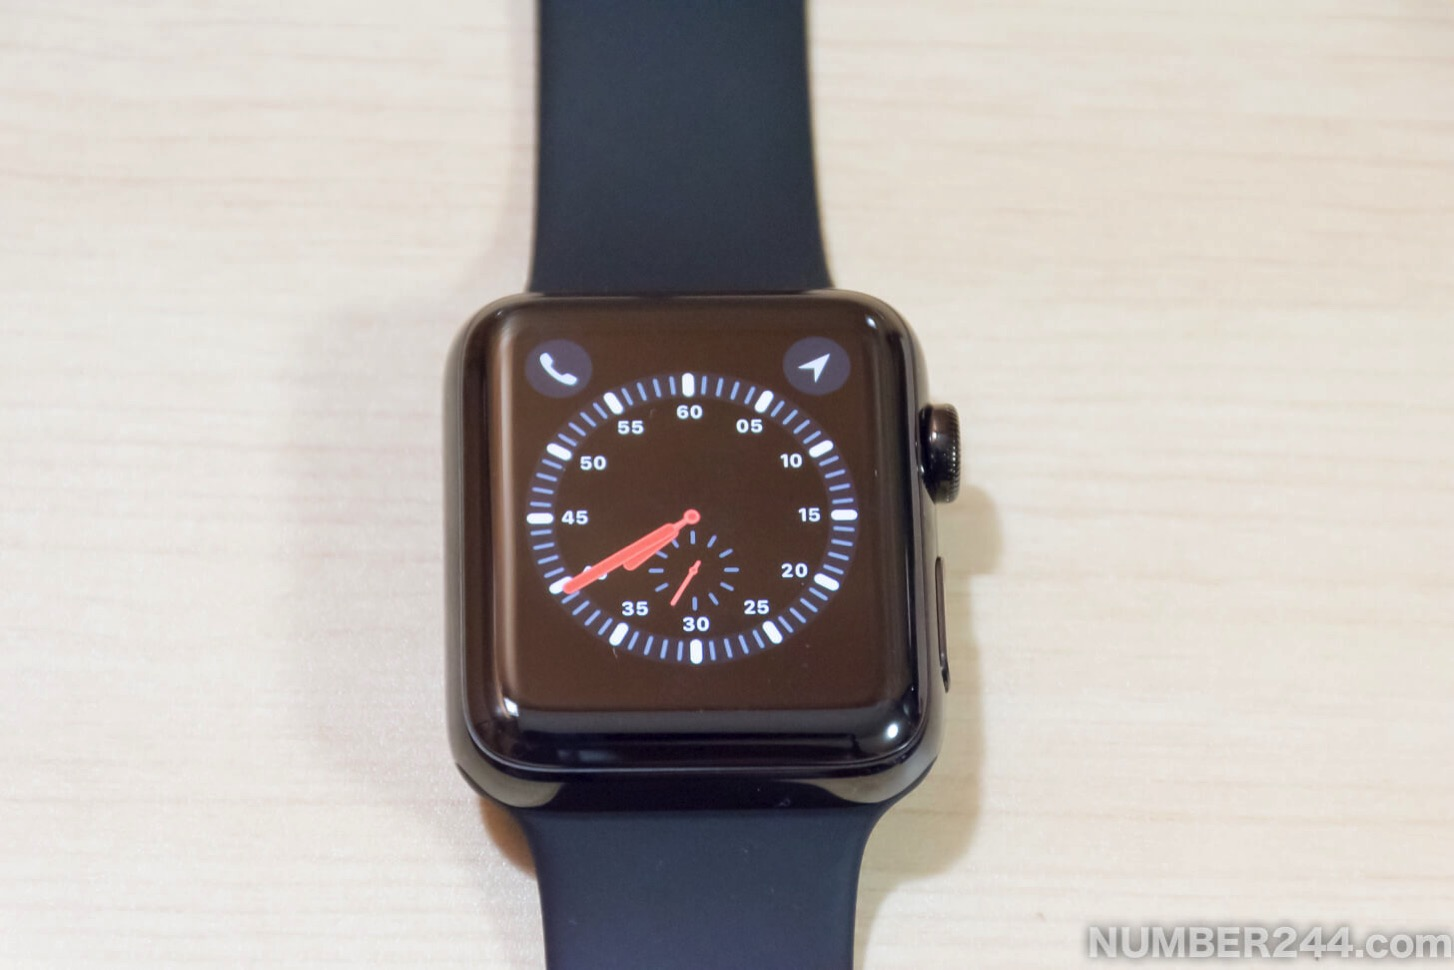 Initial setting of Apple Watch 26